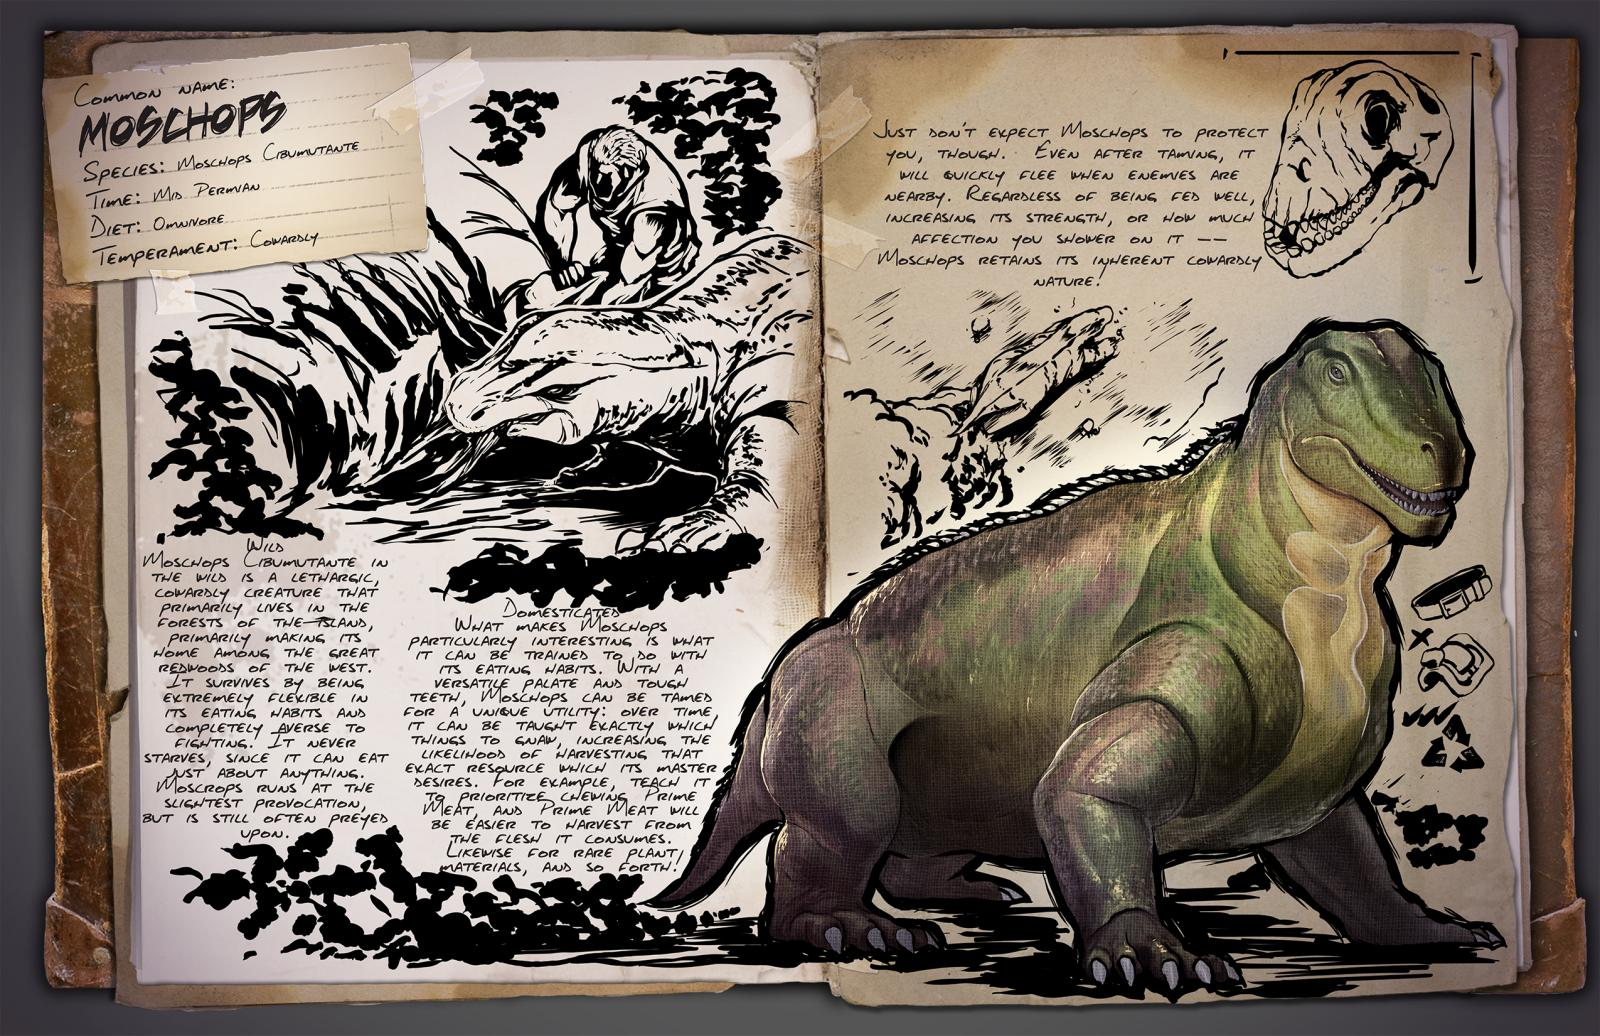 Ark survival evolved patch notes - Ark Survival Evolved Patch Notes 53